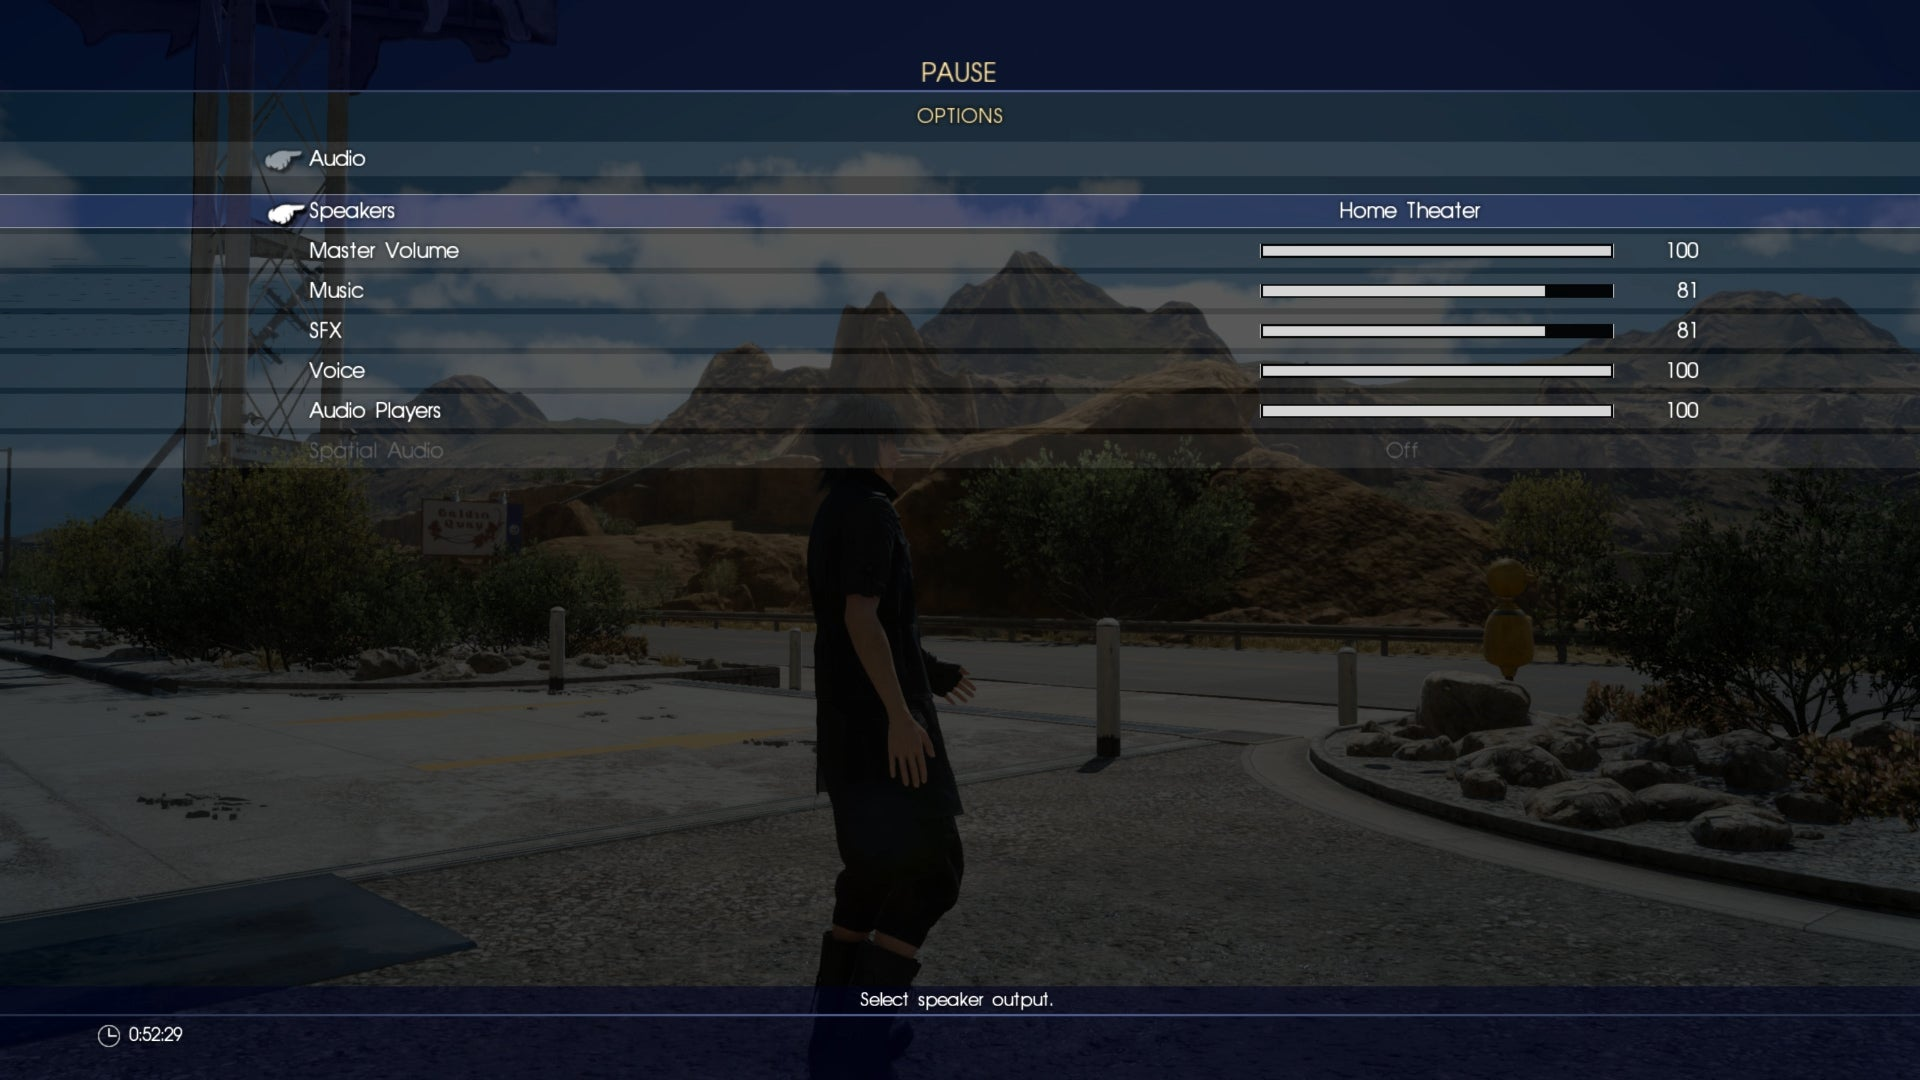 I am Cautiously Optimistic about Final Fantasy XV on PC